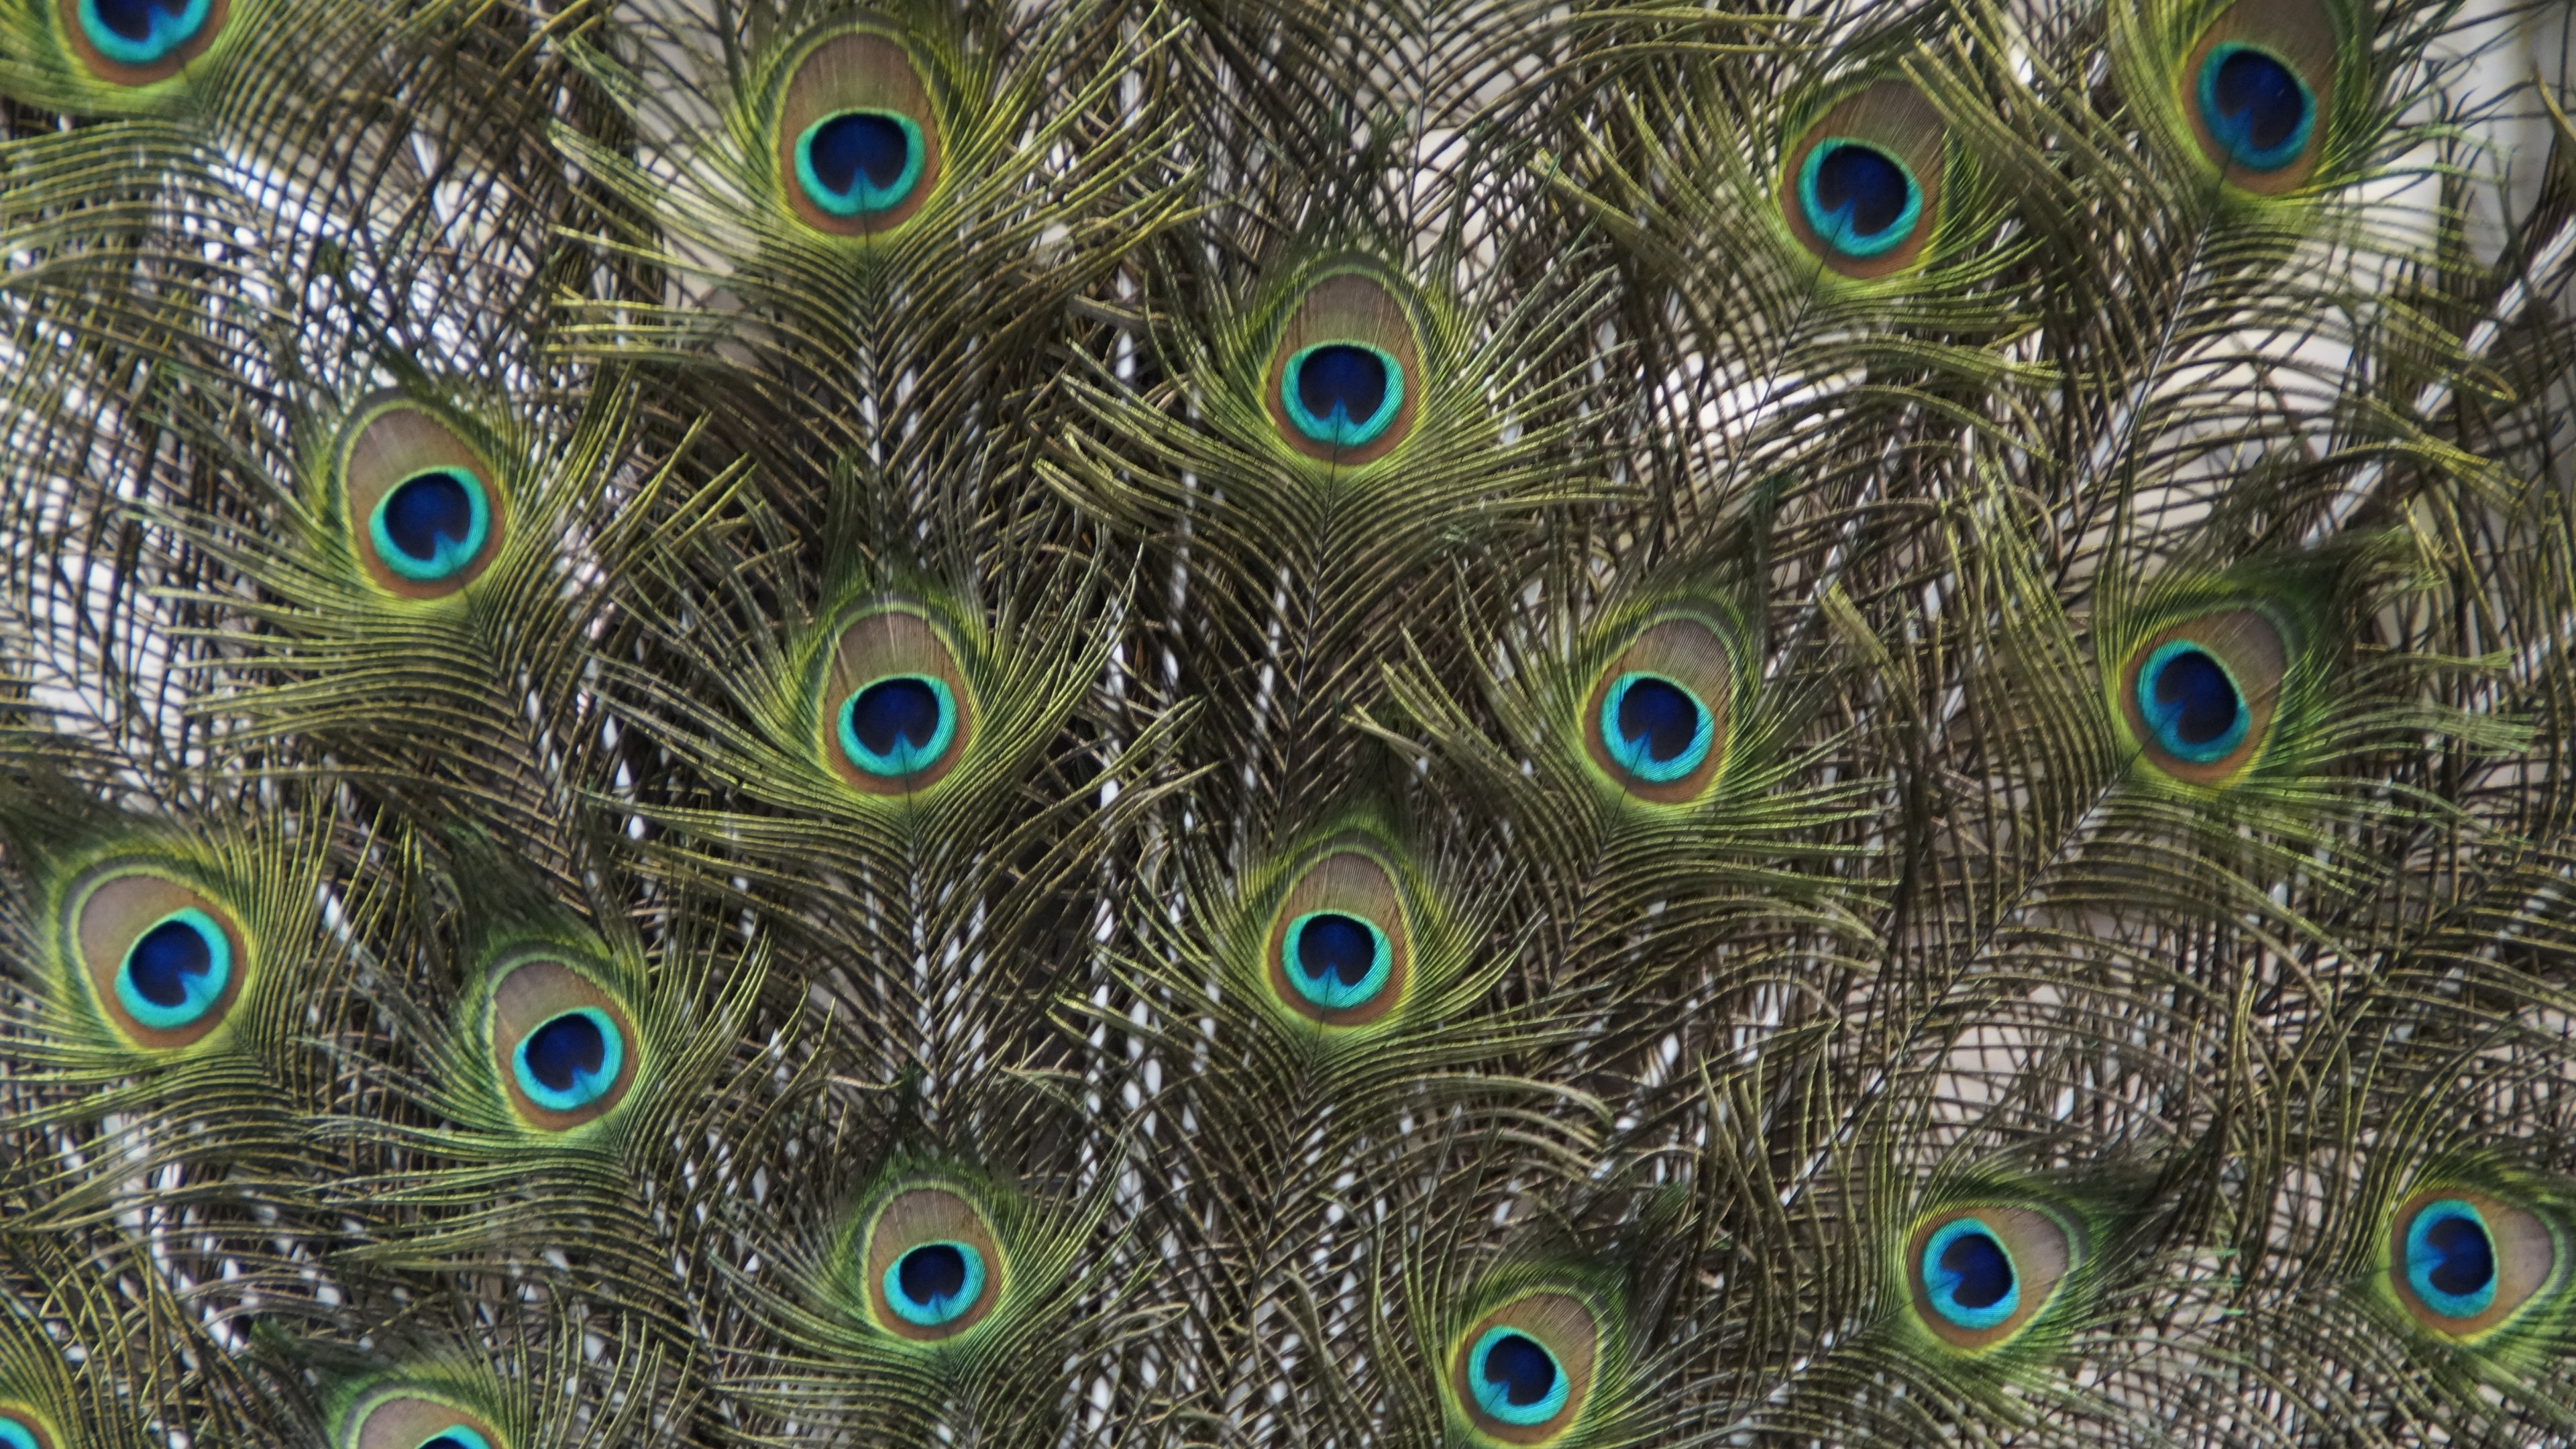 Peacock Feather Wallpaper 59 images  Get the Best HD